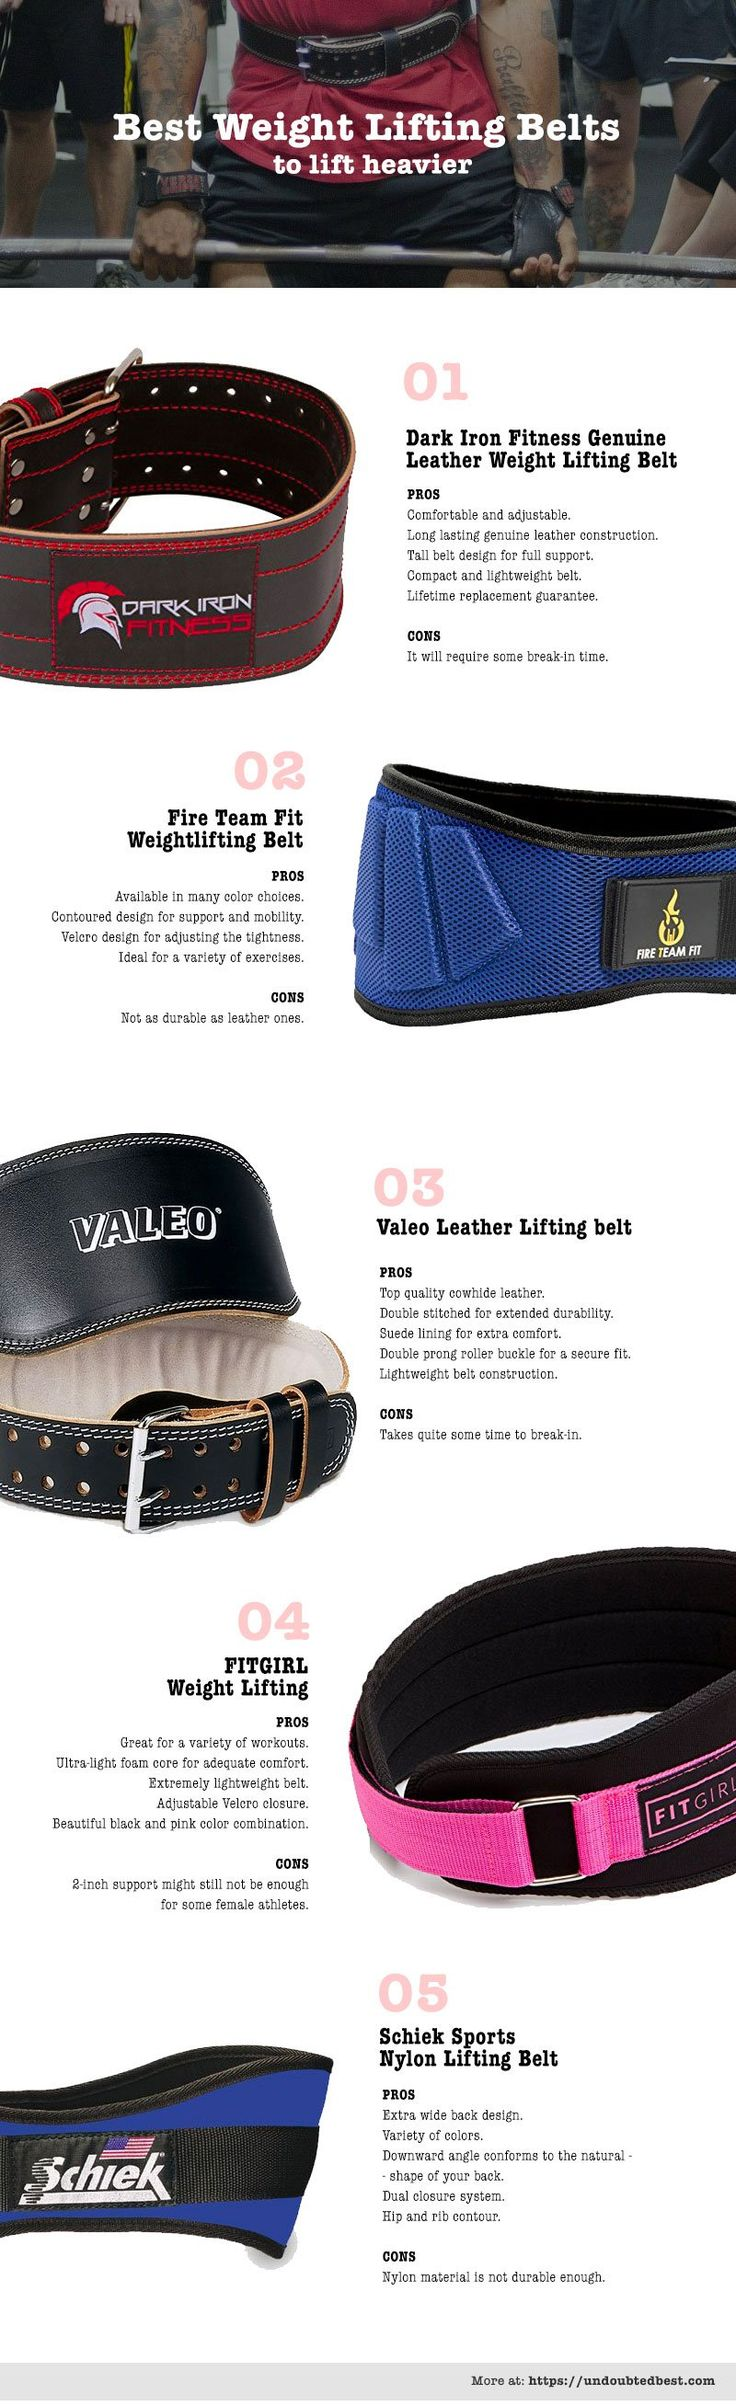 Best Weight Lifting Belts Infographic